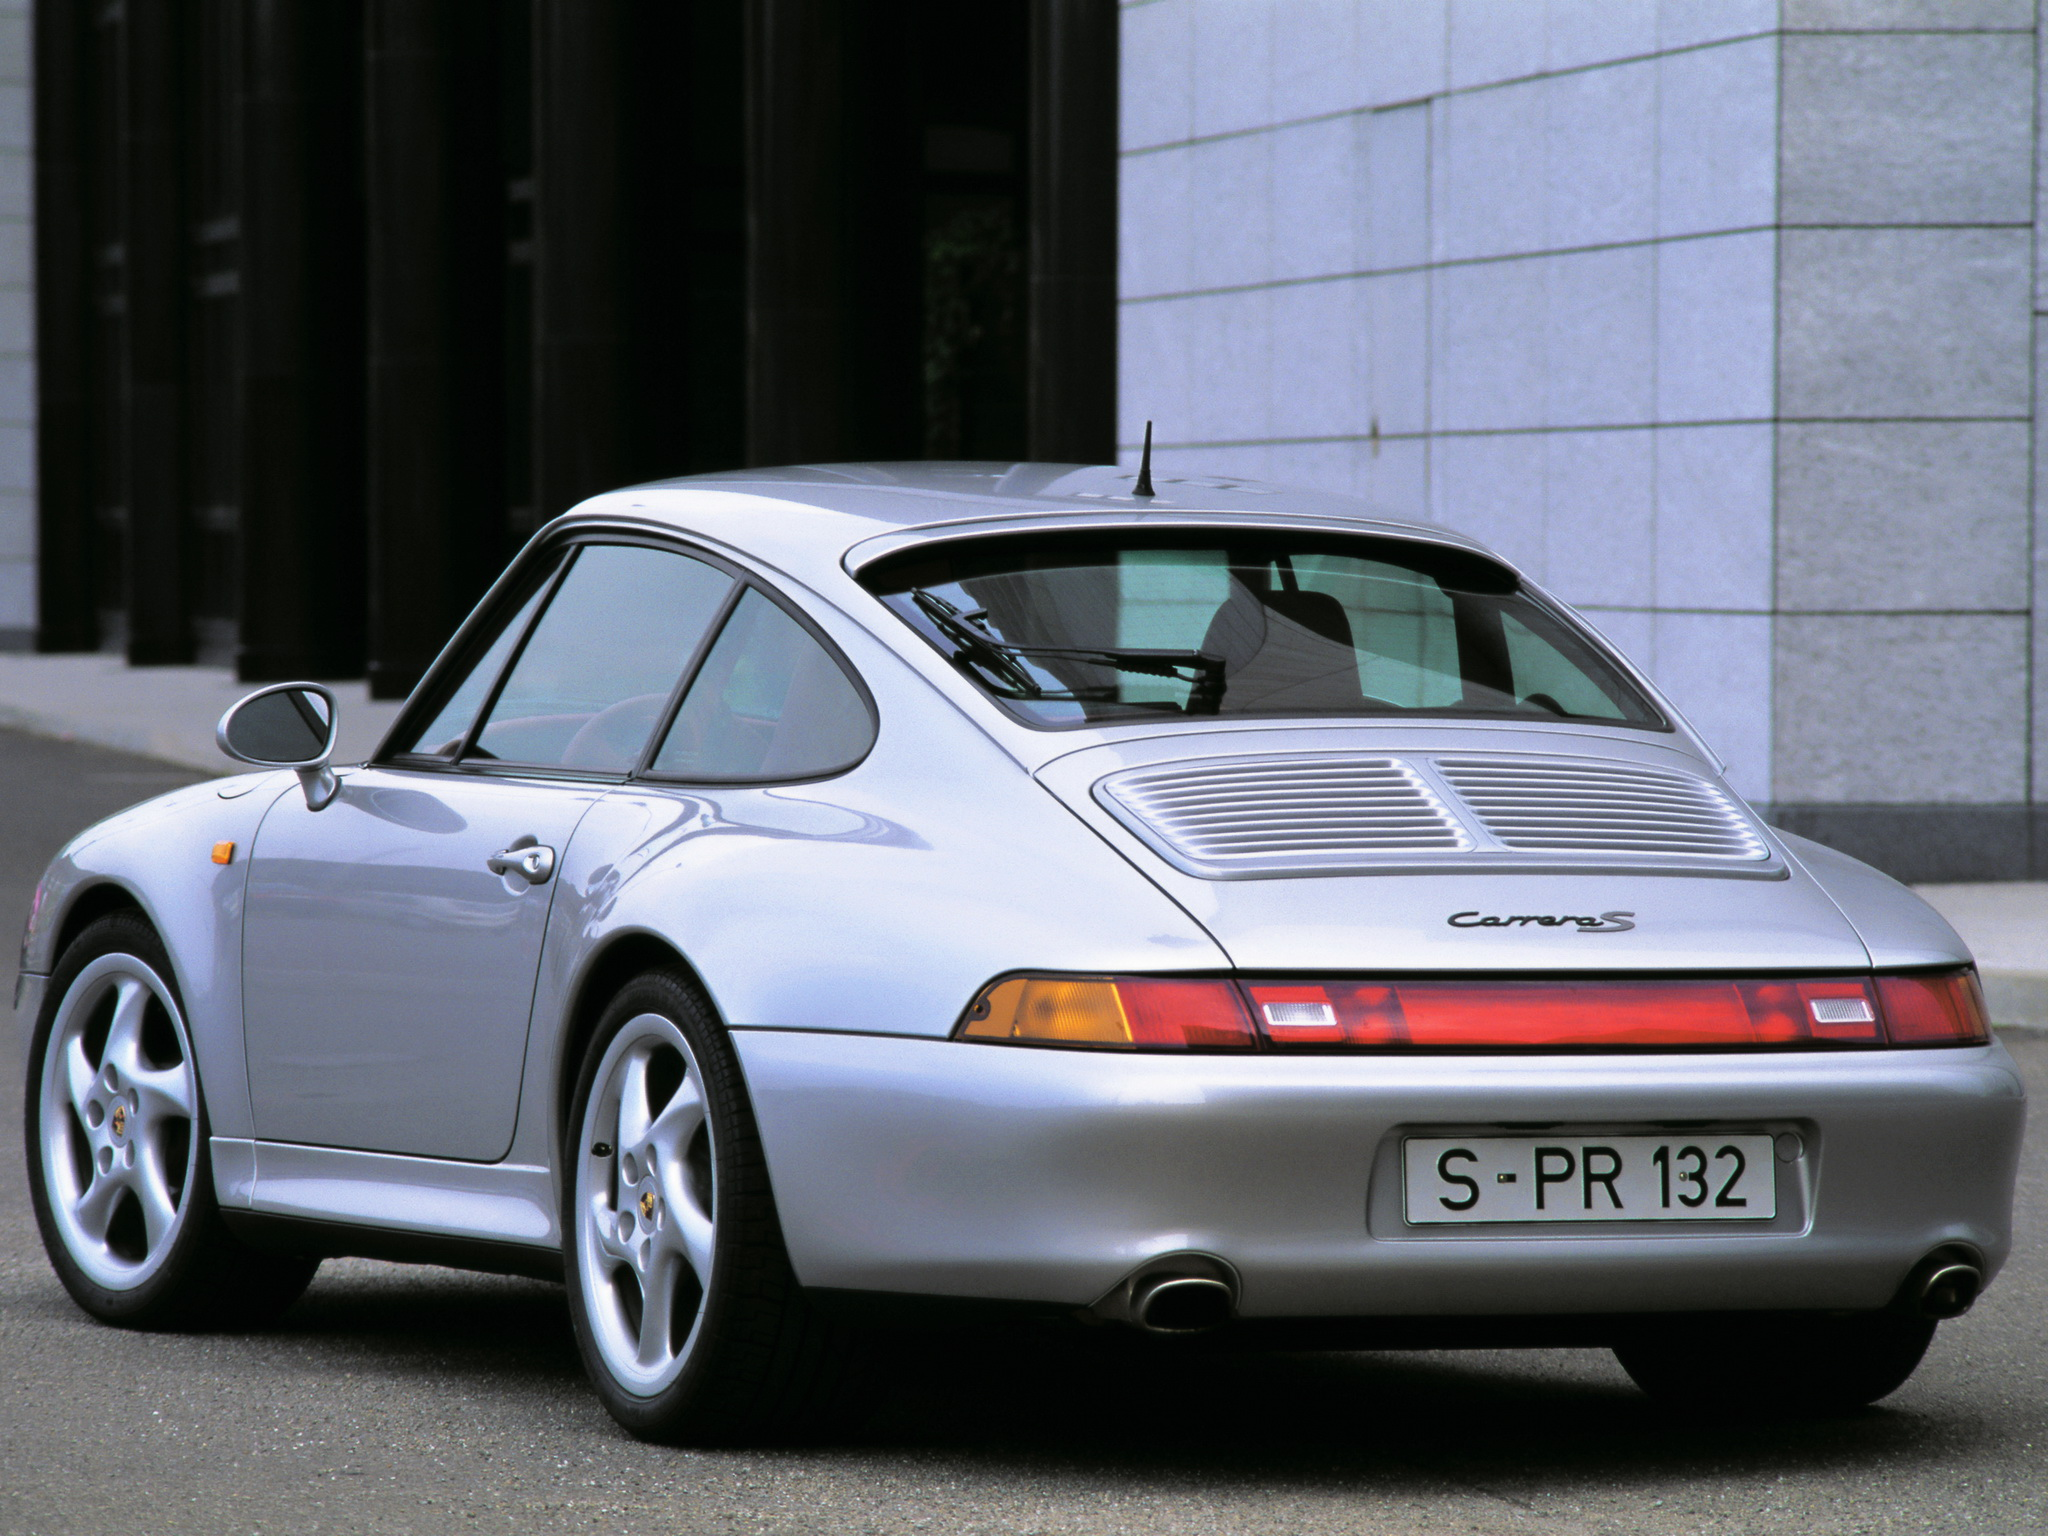 Porsche 911 Carrera S photo 99386